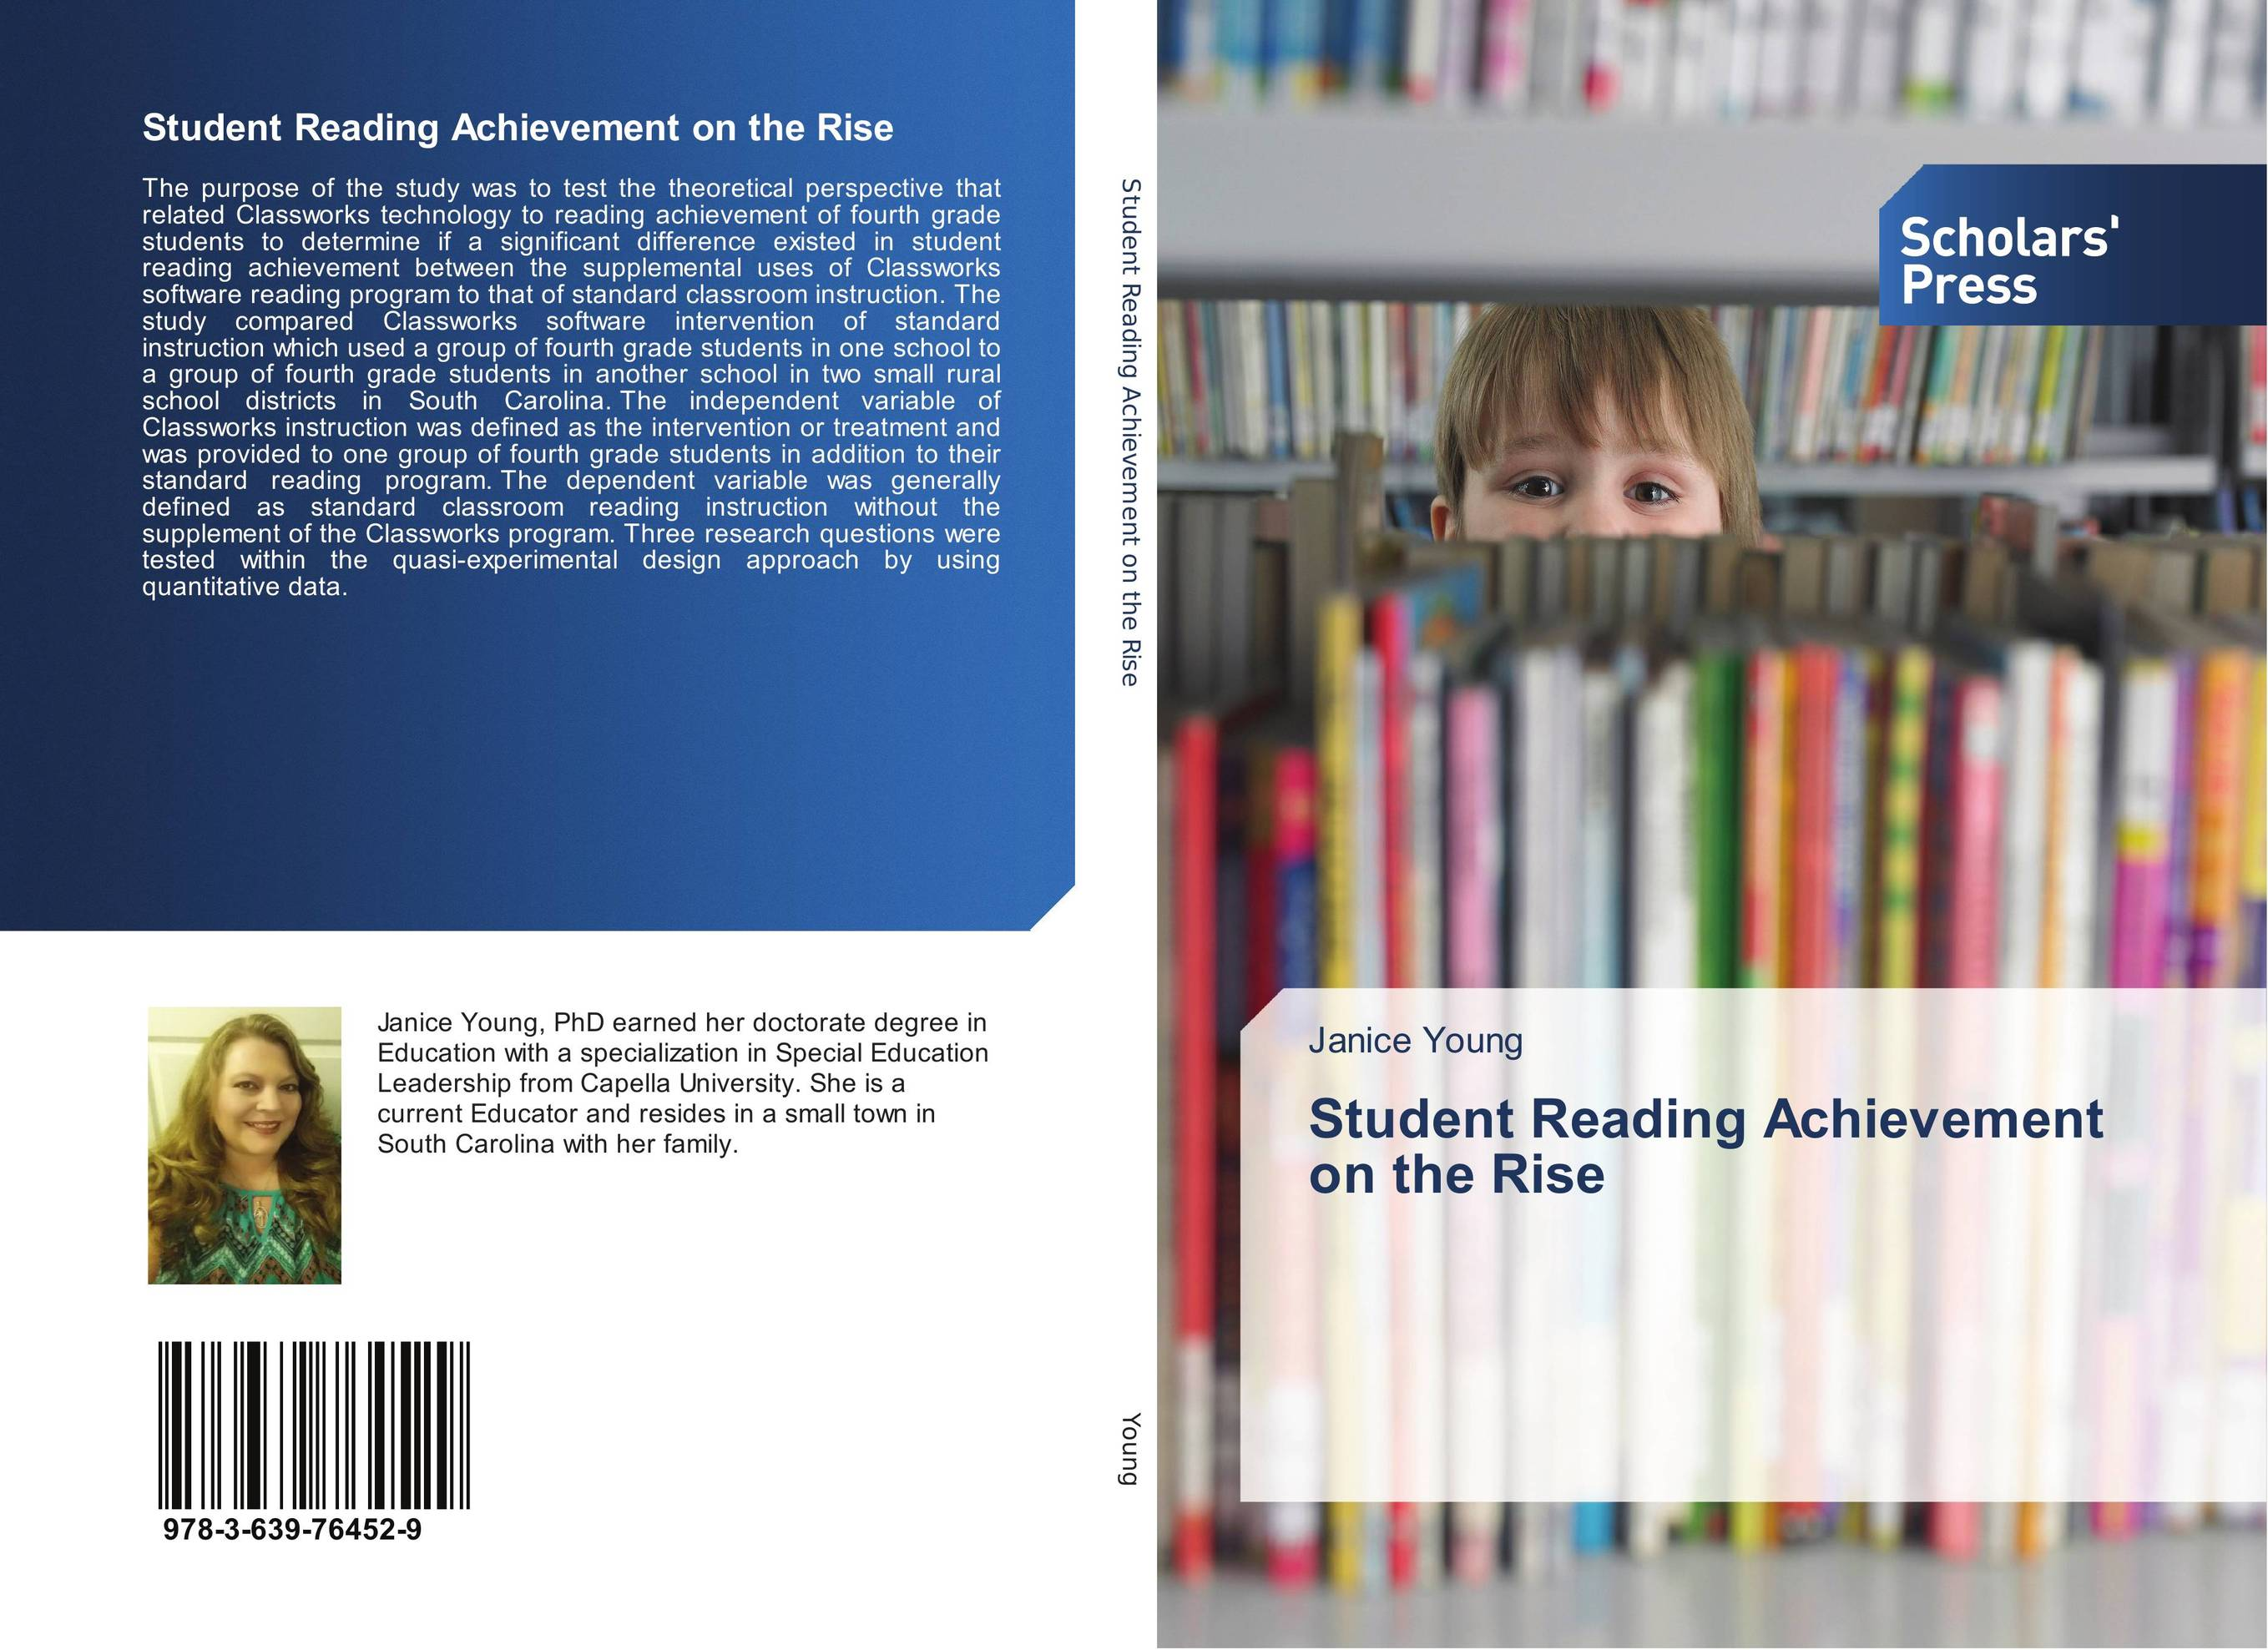 Student Reading Achievement on the Rise fourth grade celebrity